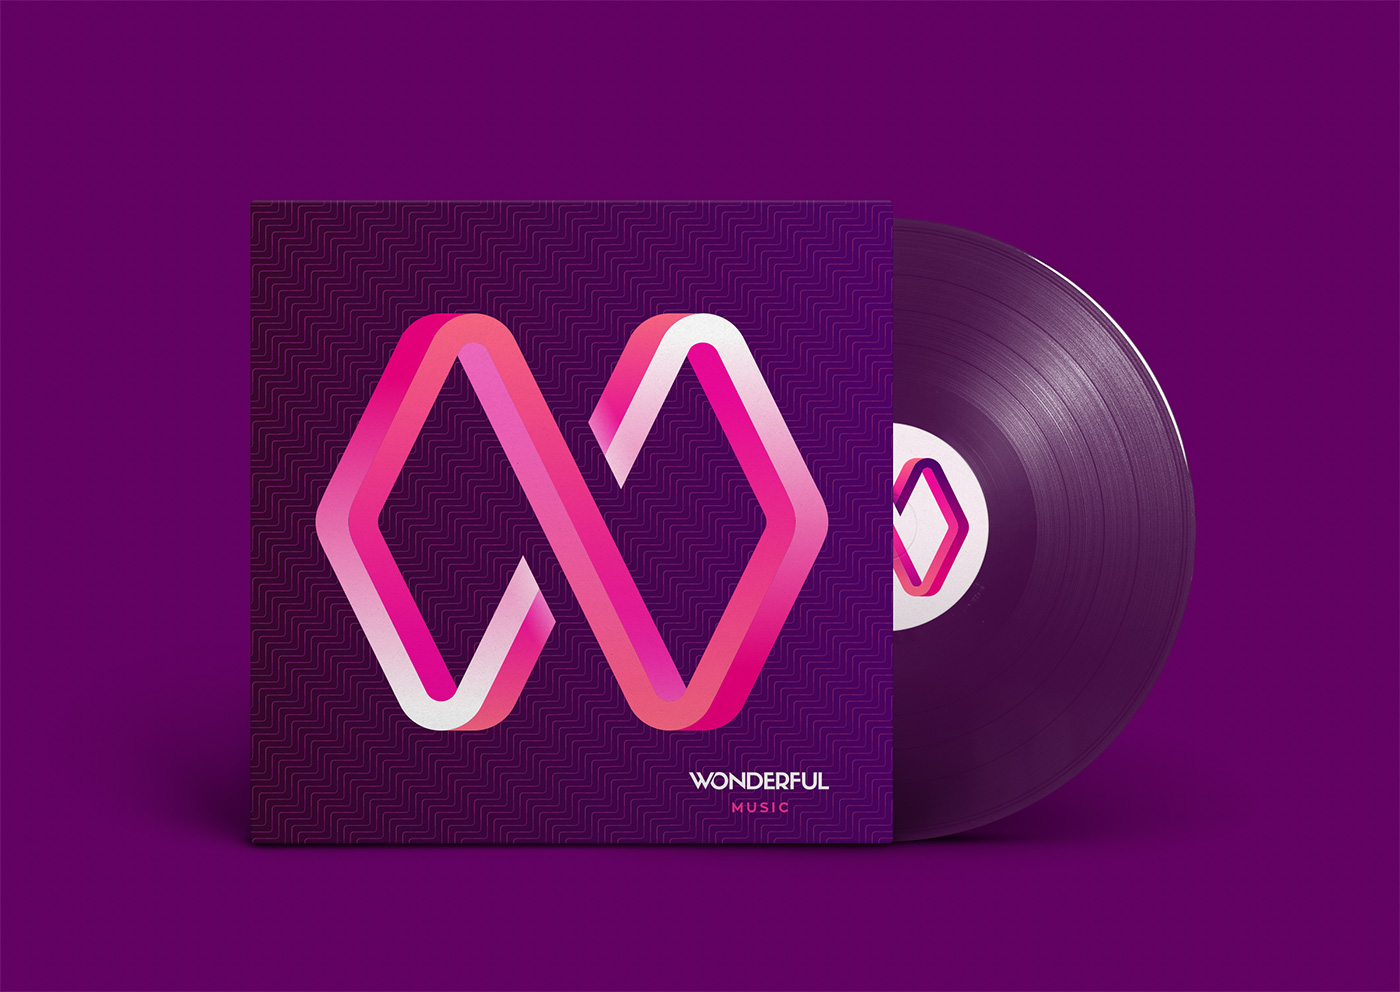 Outfit Branding & Design Wonderful Vinyl Record